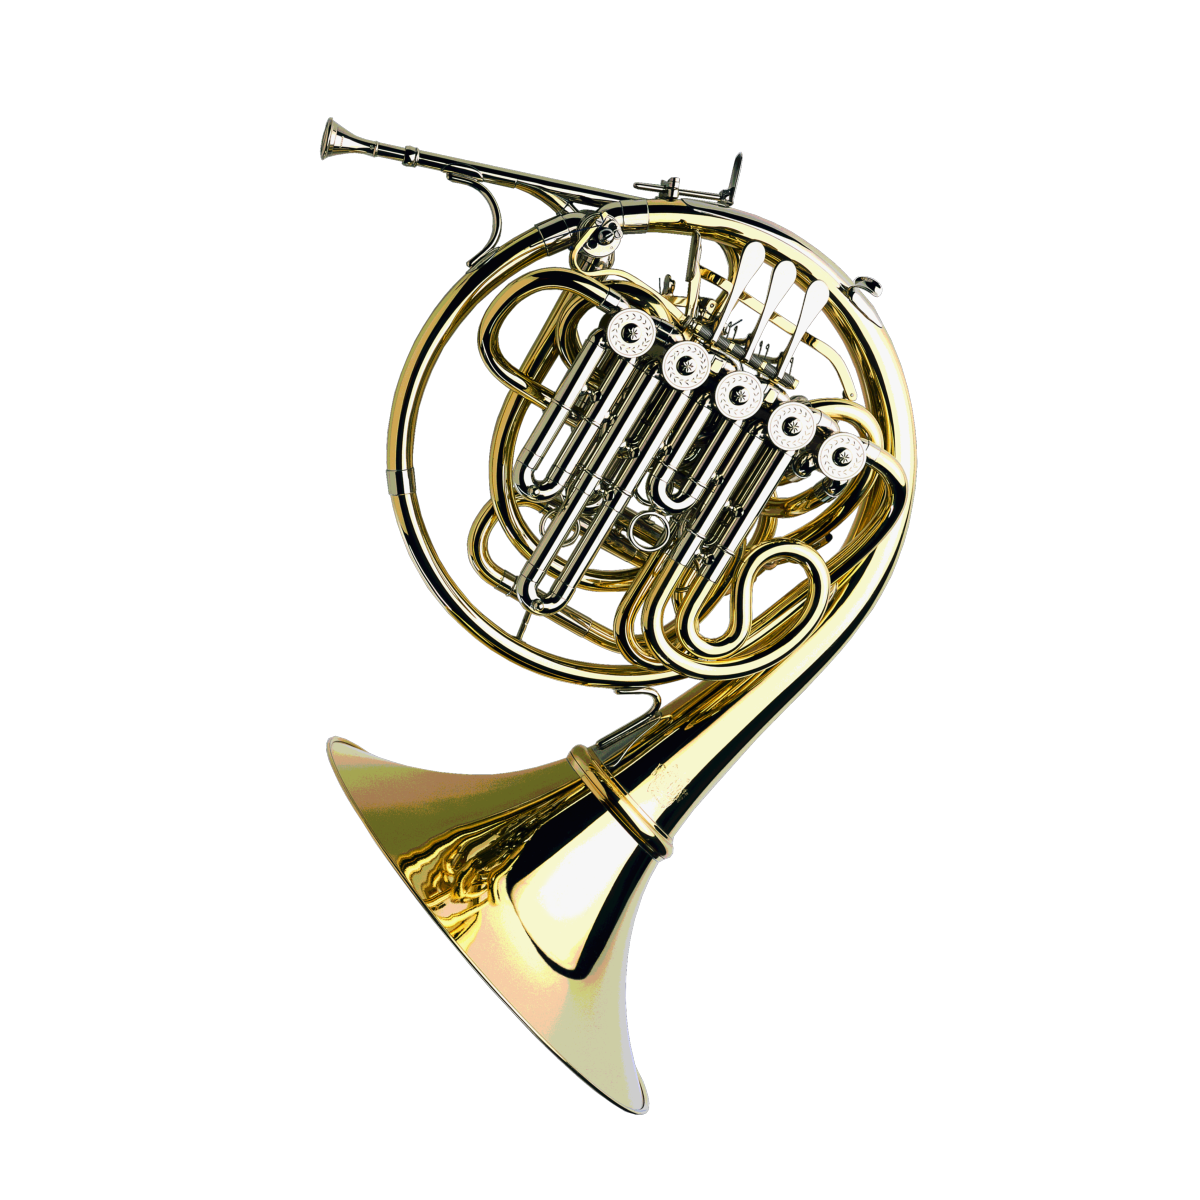 Paxman - Professional Model 83 F/Bb(A-+)/F-Alto Compensating Triple French Horn-French Horn-Paxman-Music Elements